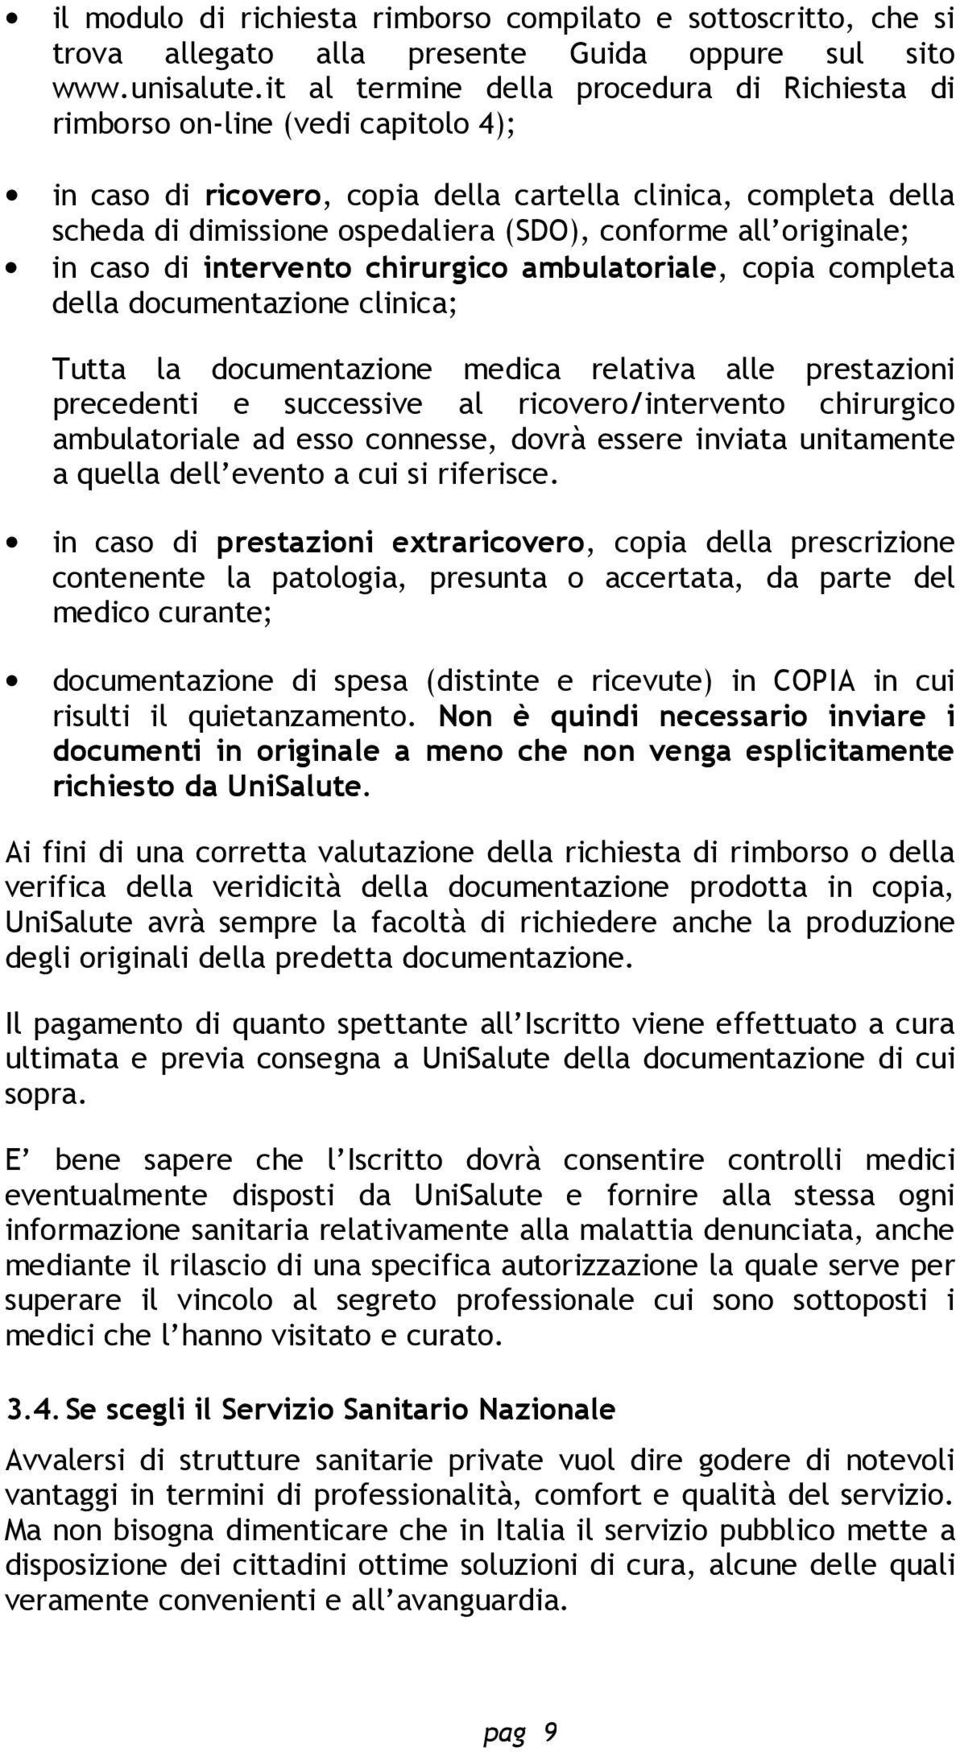 all originale; in caso di intervento chirurgico ambulatoriale, copia completa della documentazione clinica; Tutta la documentazione medica relativa alle prestazioni precedenti e successive al